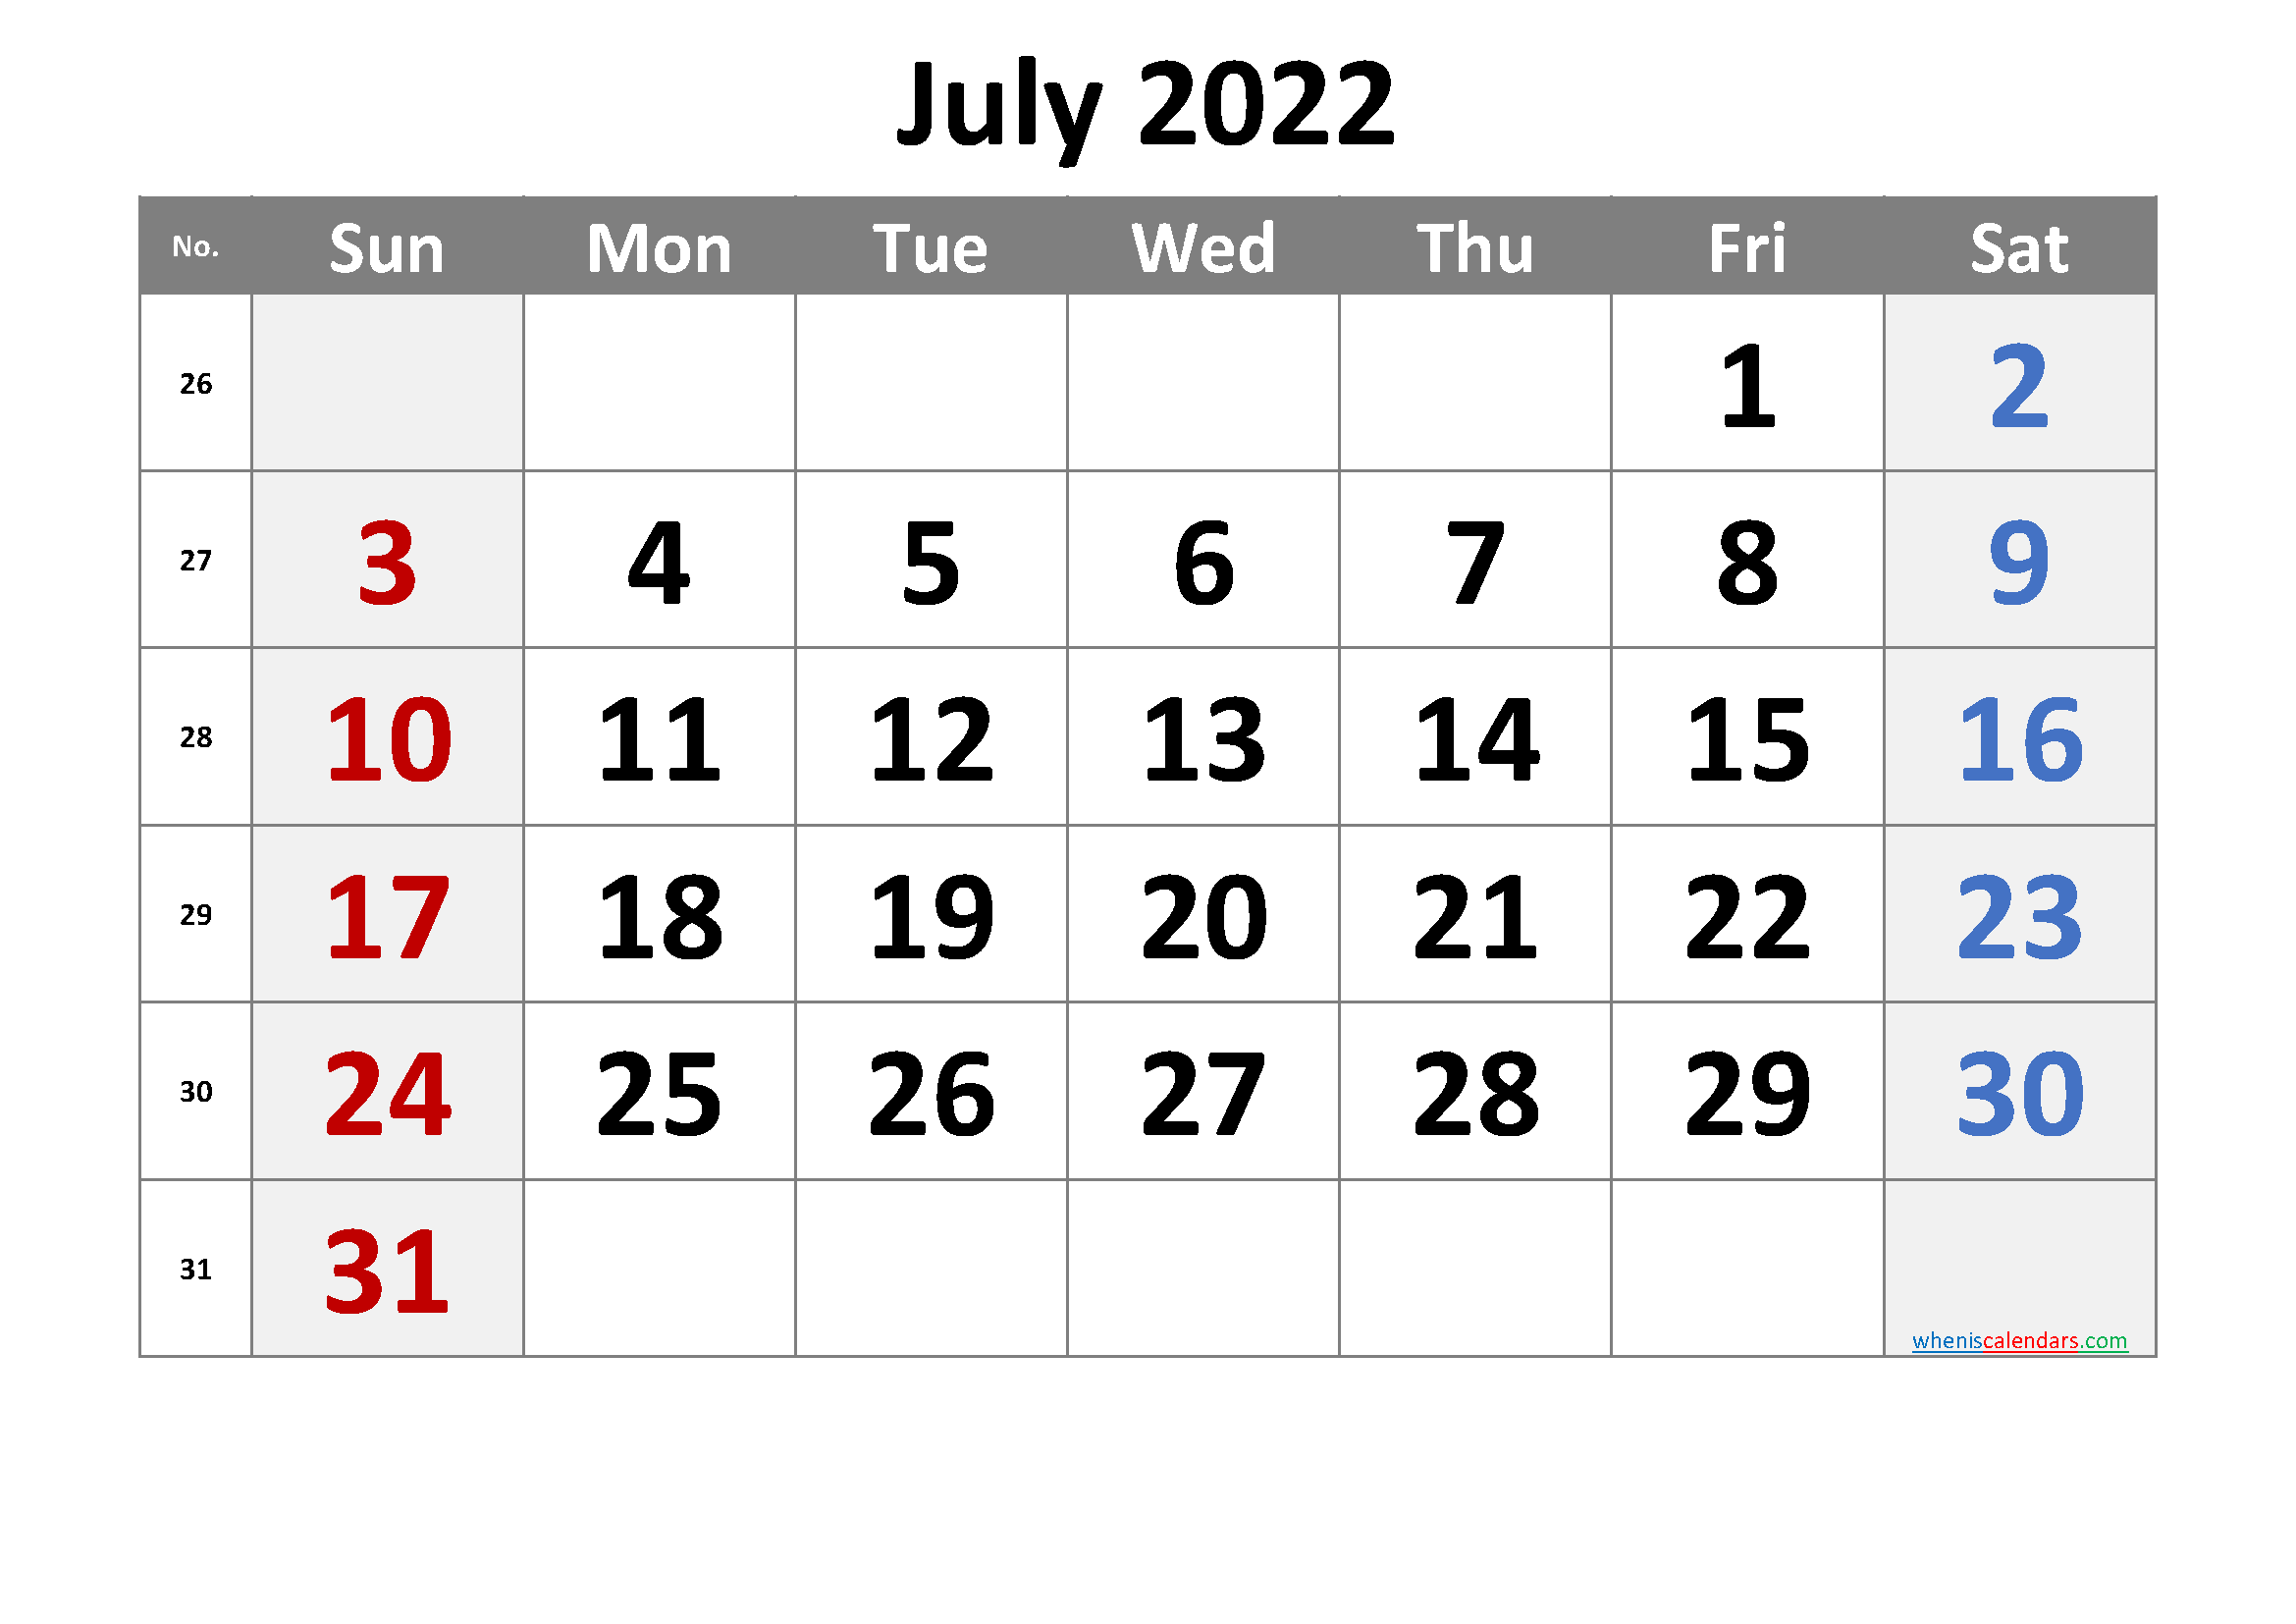 July 2022 Printable Calendar with Week Numbers